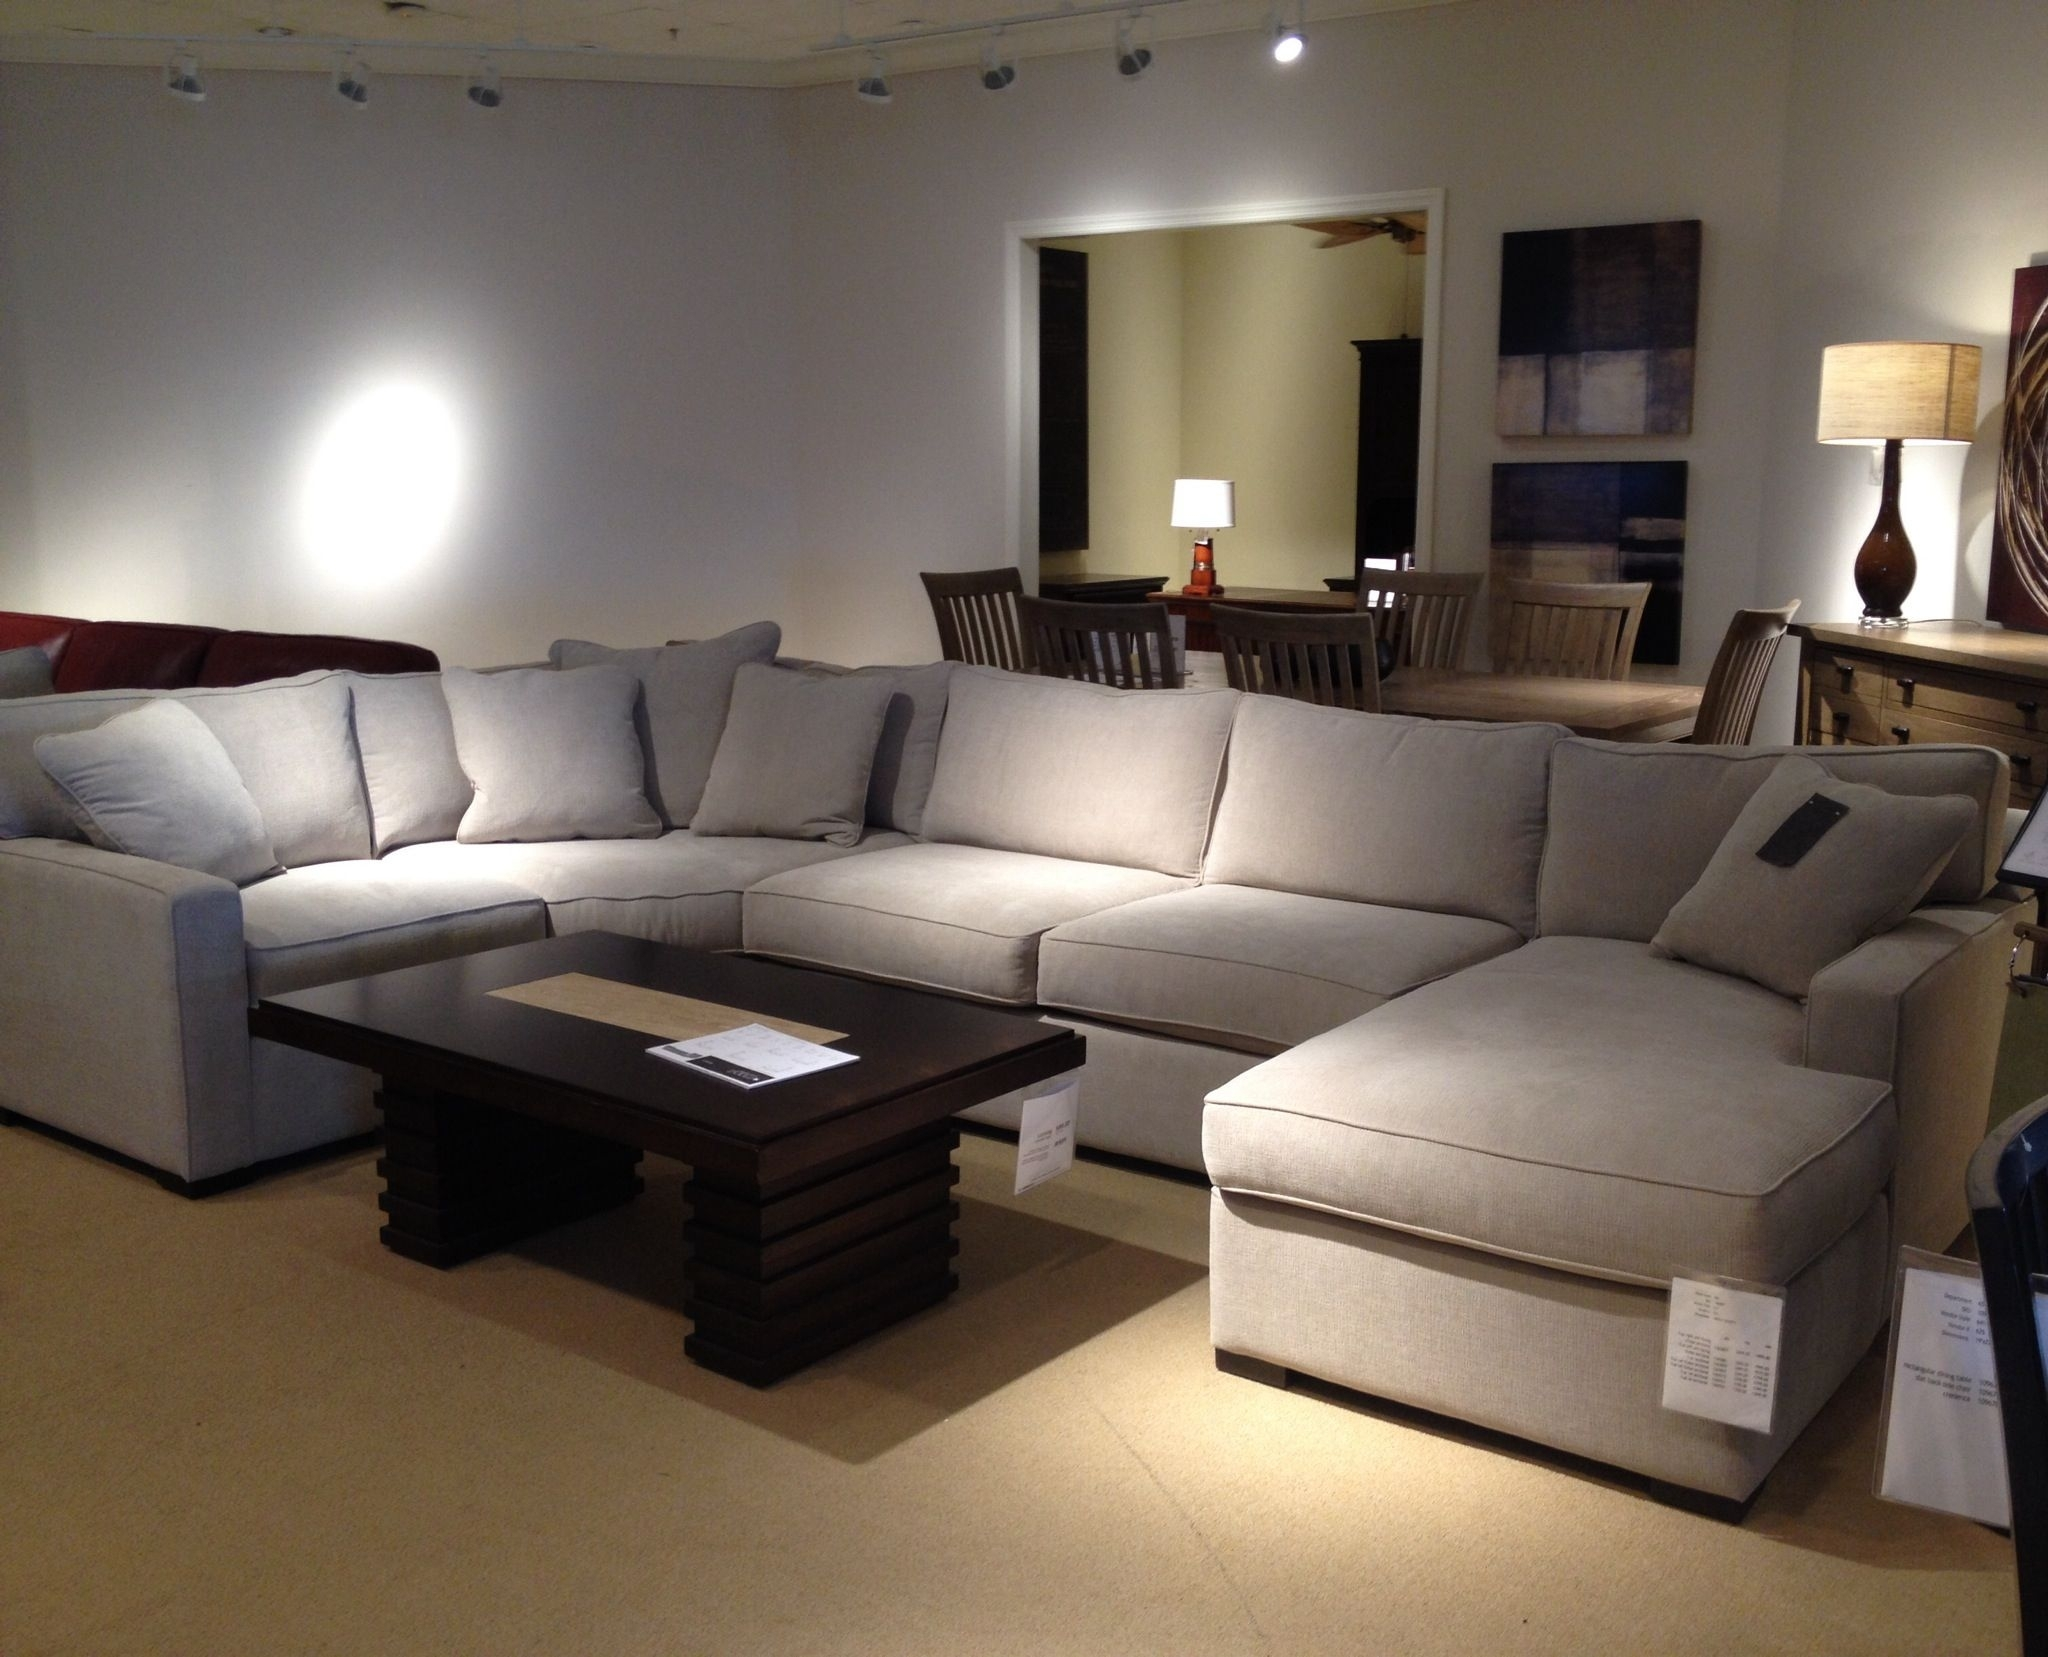 Radley 4 Piece Sectional Sofa From Macys (Image 5 of 10)